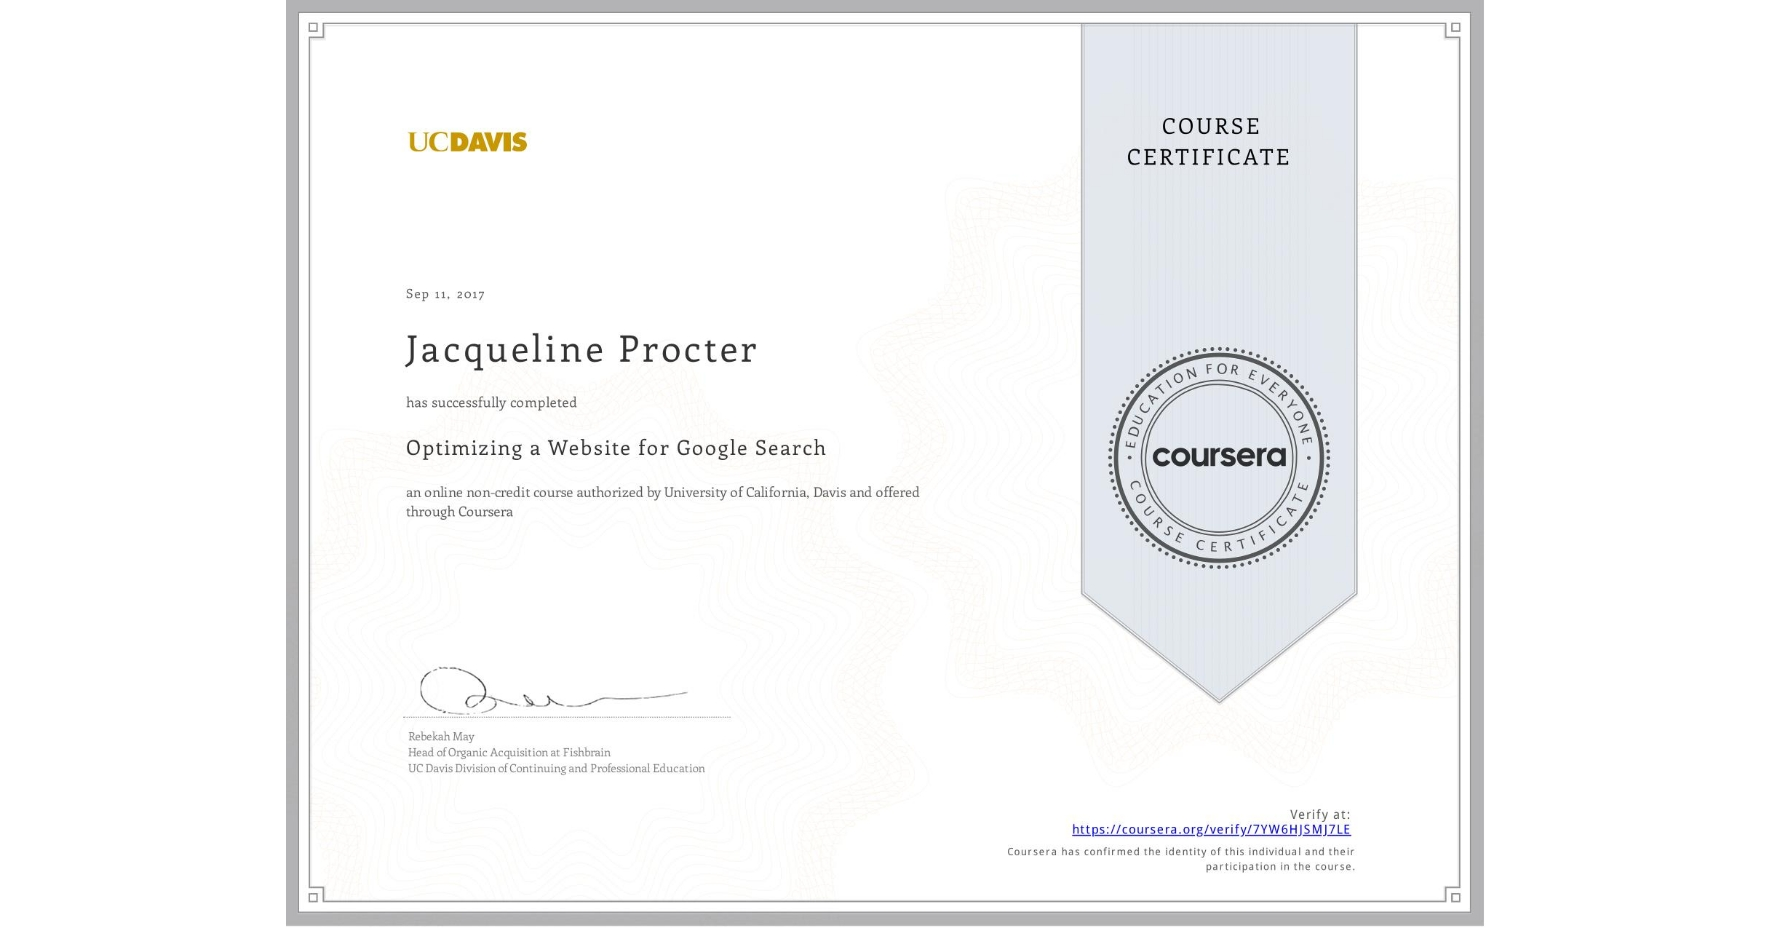 View certificate for Jacqueline Procter, Optimizing a Website for Google Search, an online non-credit course authorized by University of California, Davis and offered through Coursera